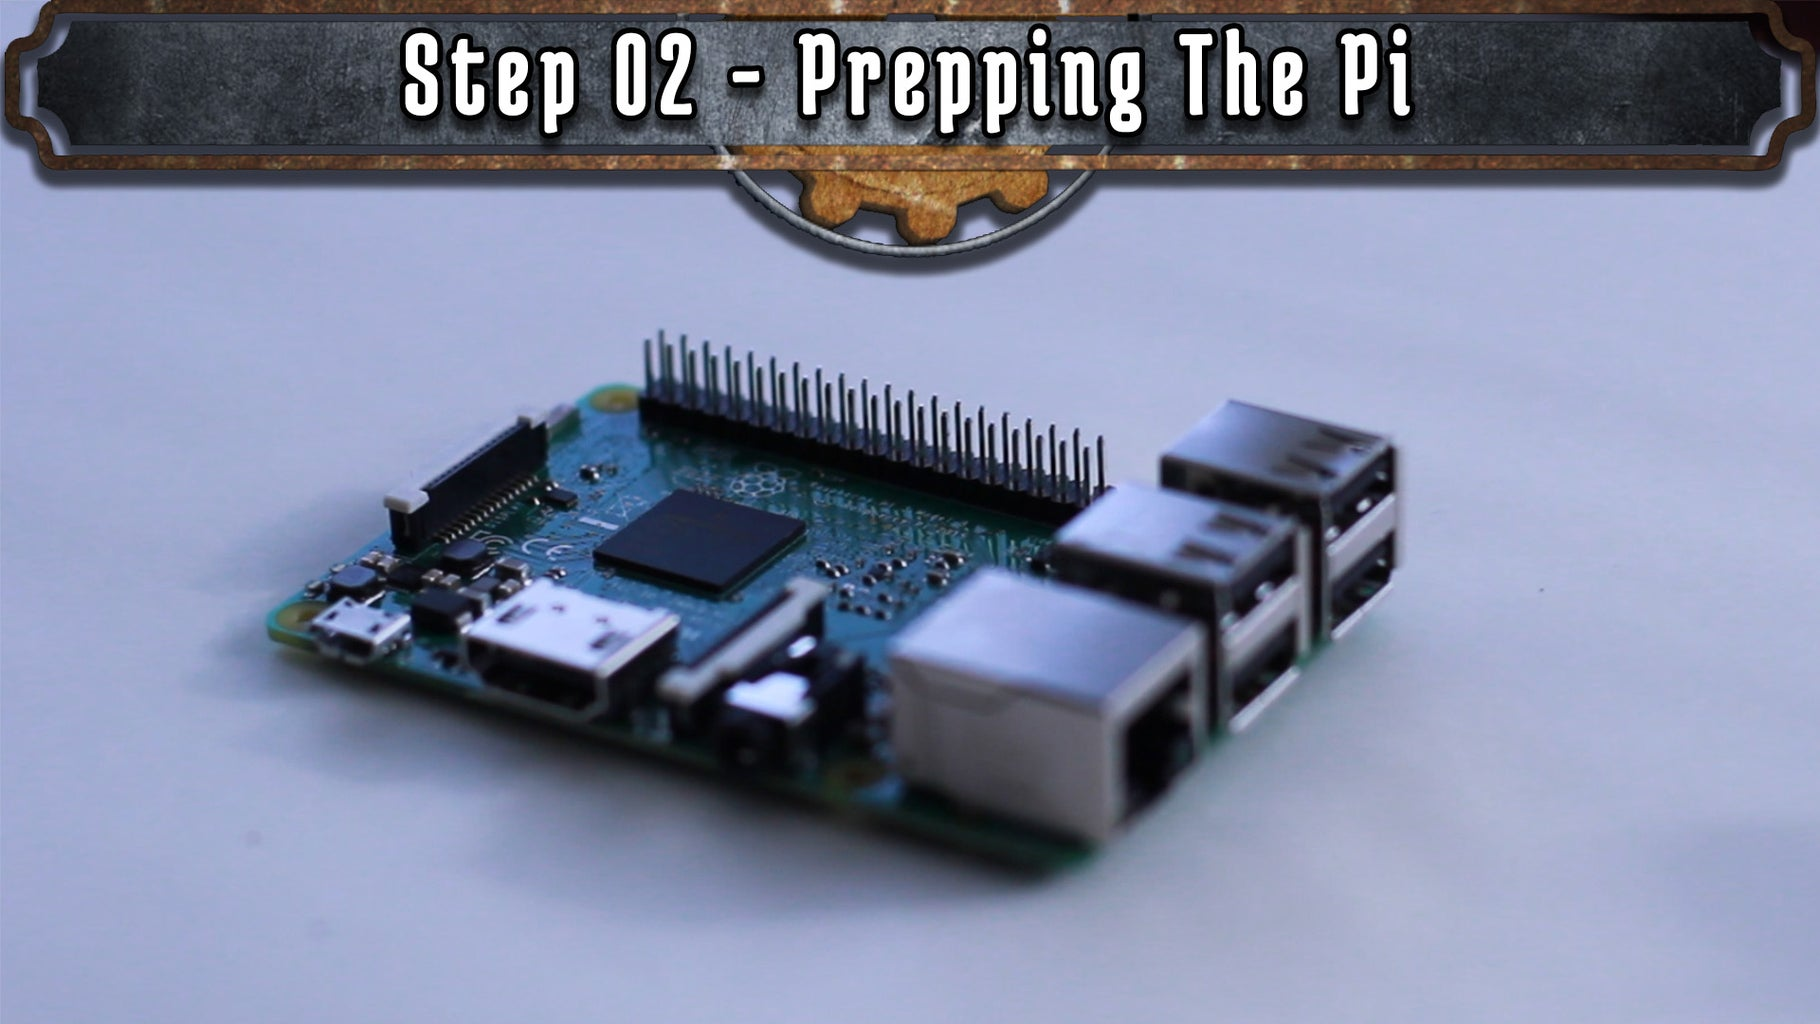 Prepping the Pi